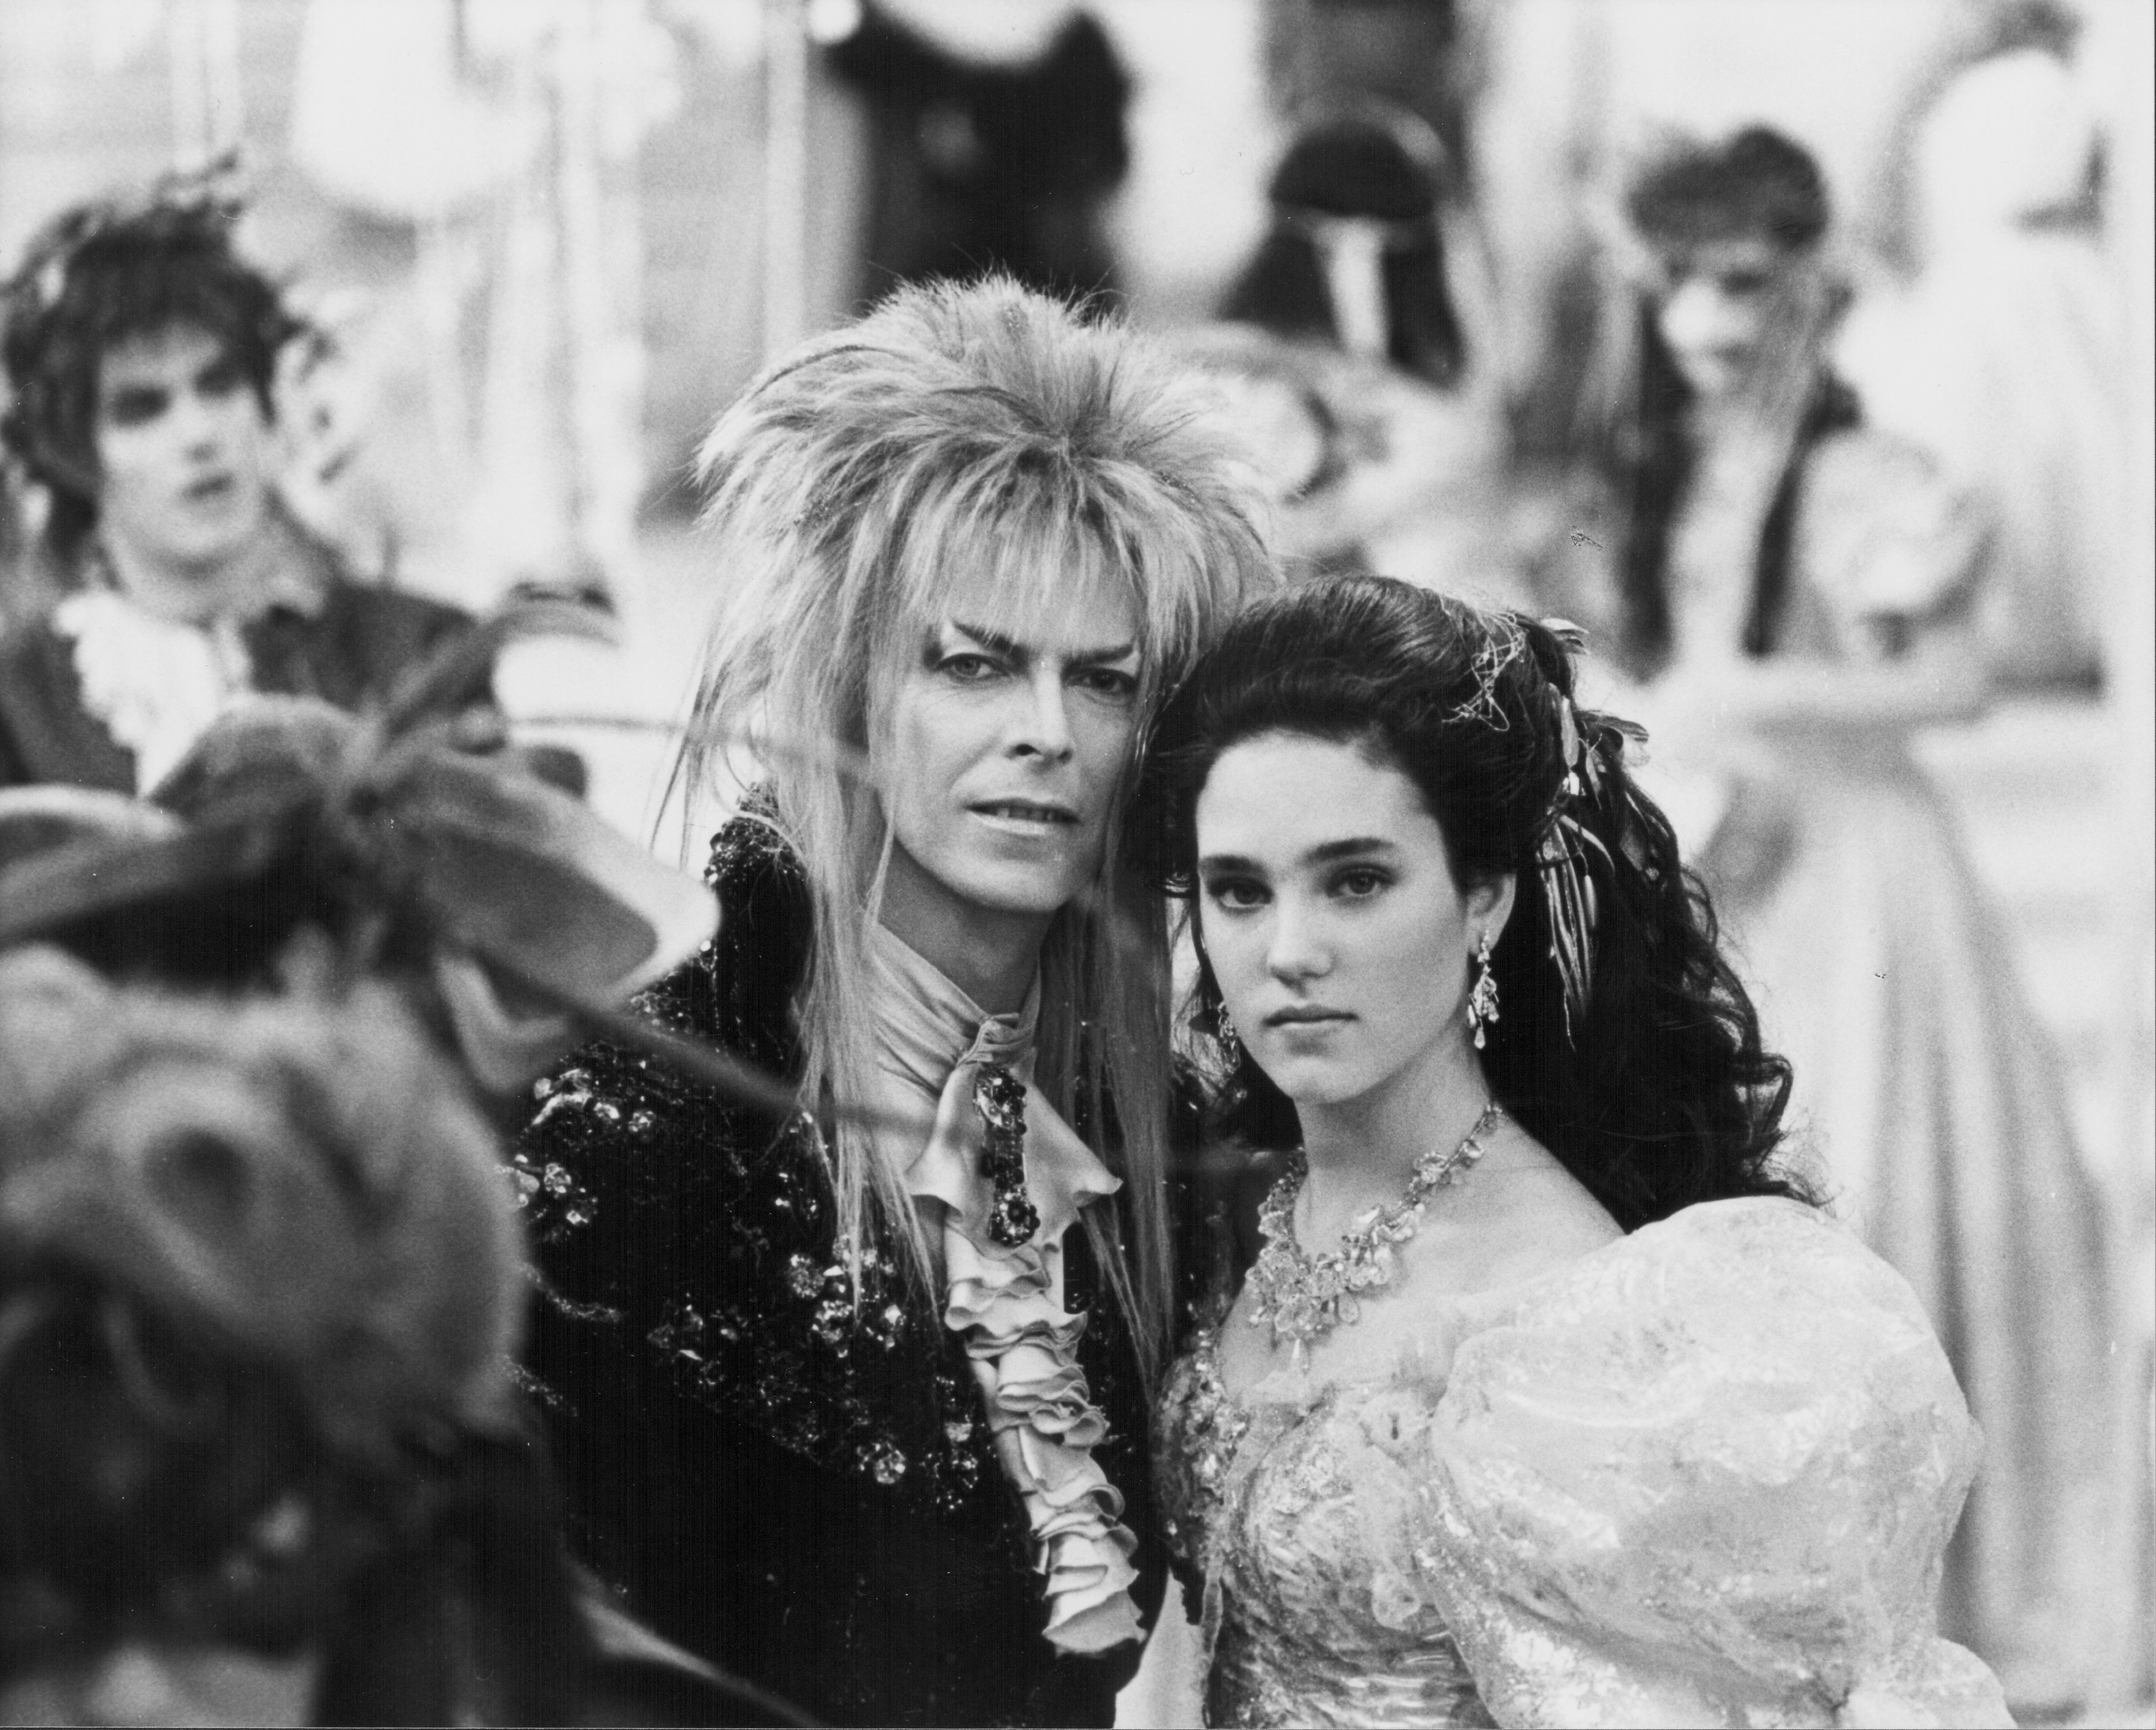 Actors David Bowie and Jennifer Connelly in a scene from the movie 'Labyrinth', 1986. (Photo by Stanley Bielecki Movie Collection/Getty Images)